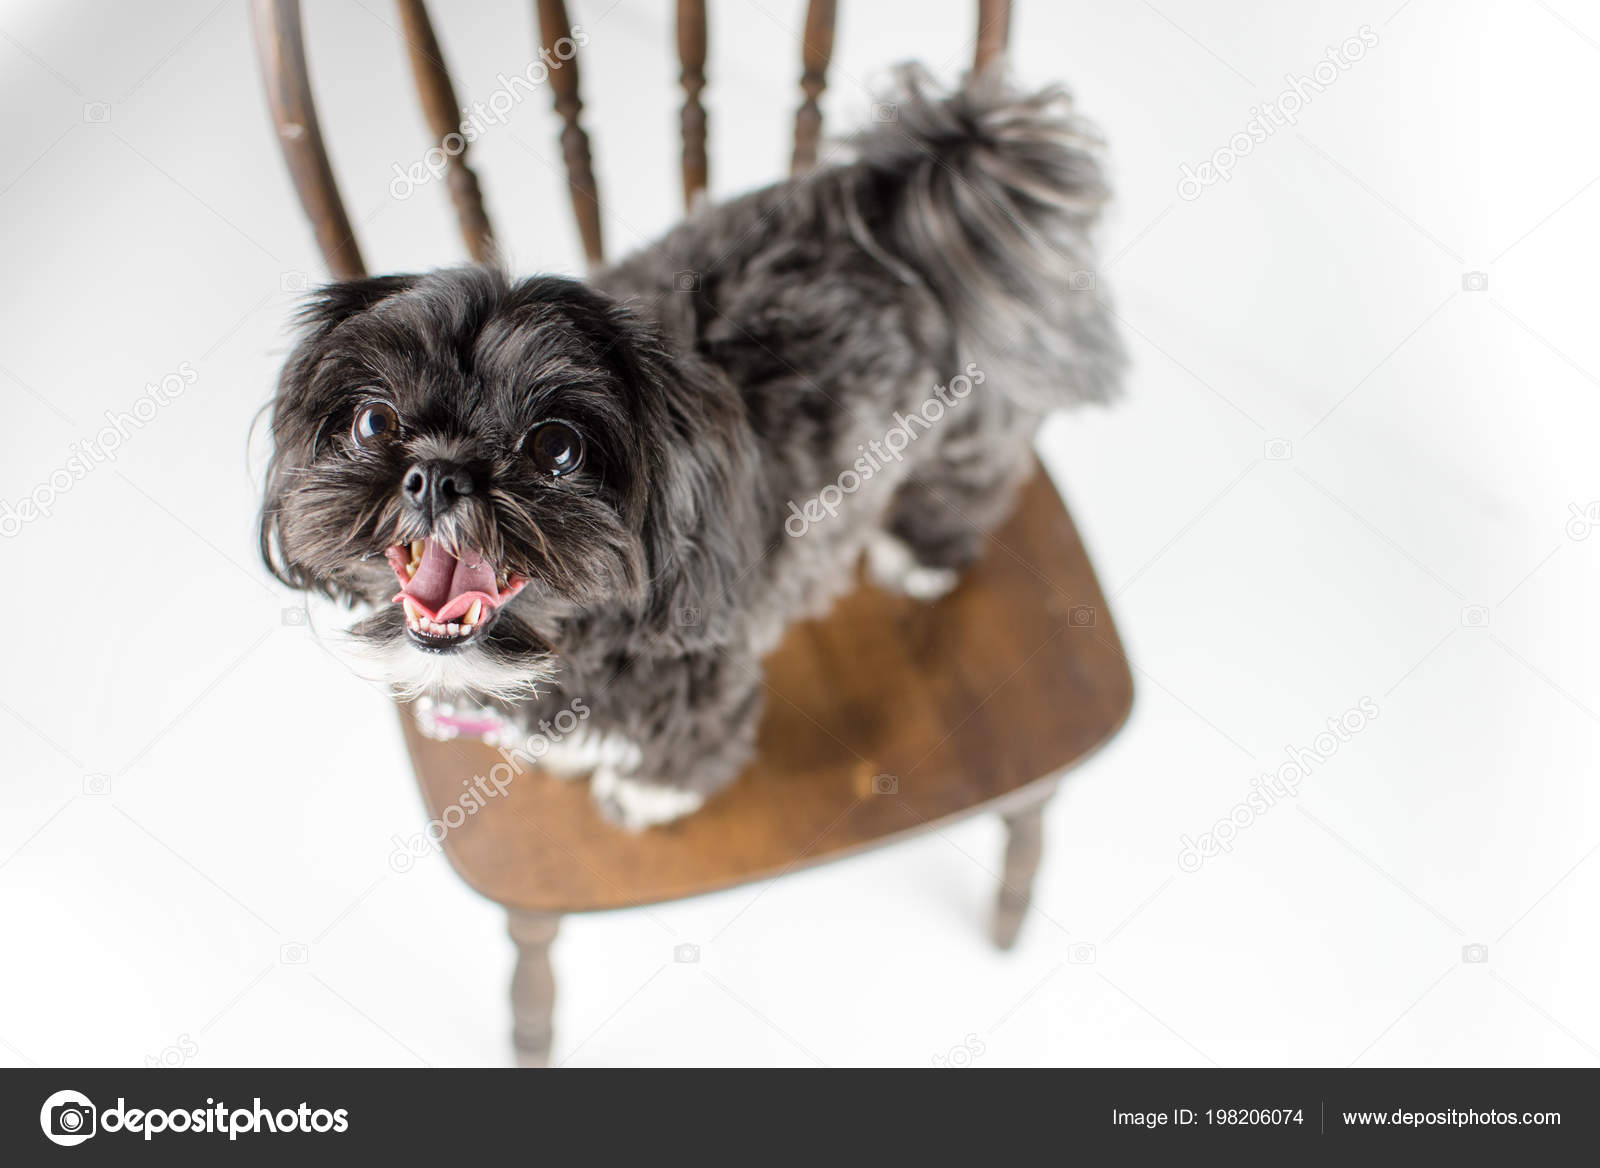 Adorable Miniature Shih Tzu Puppy Dog White Black Short Fur Stock